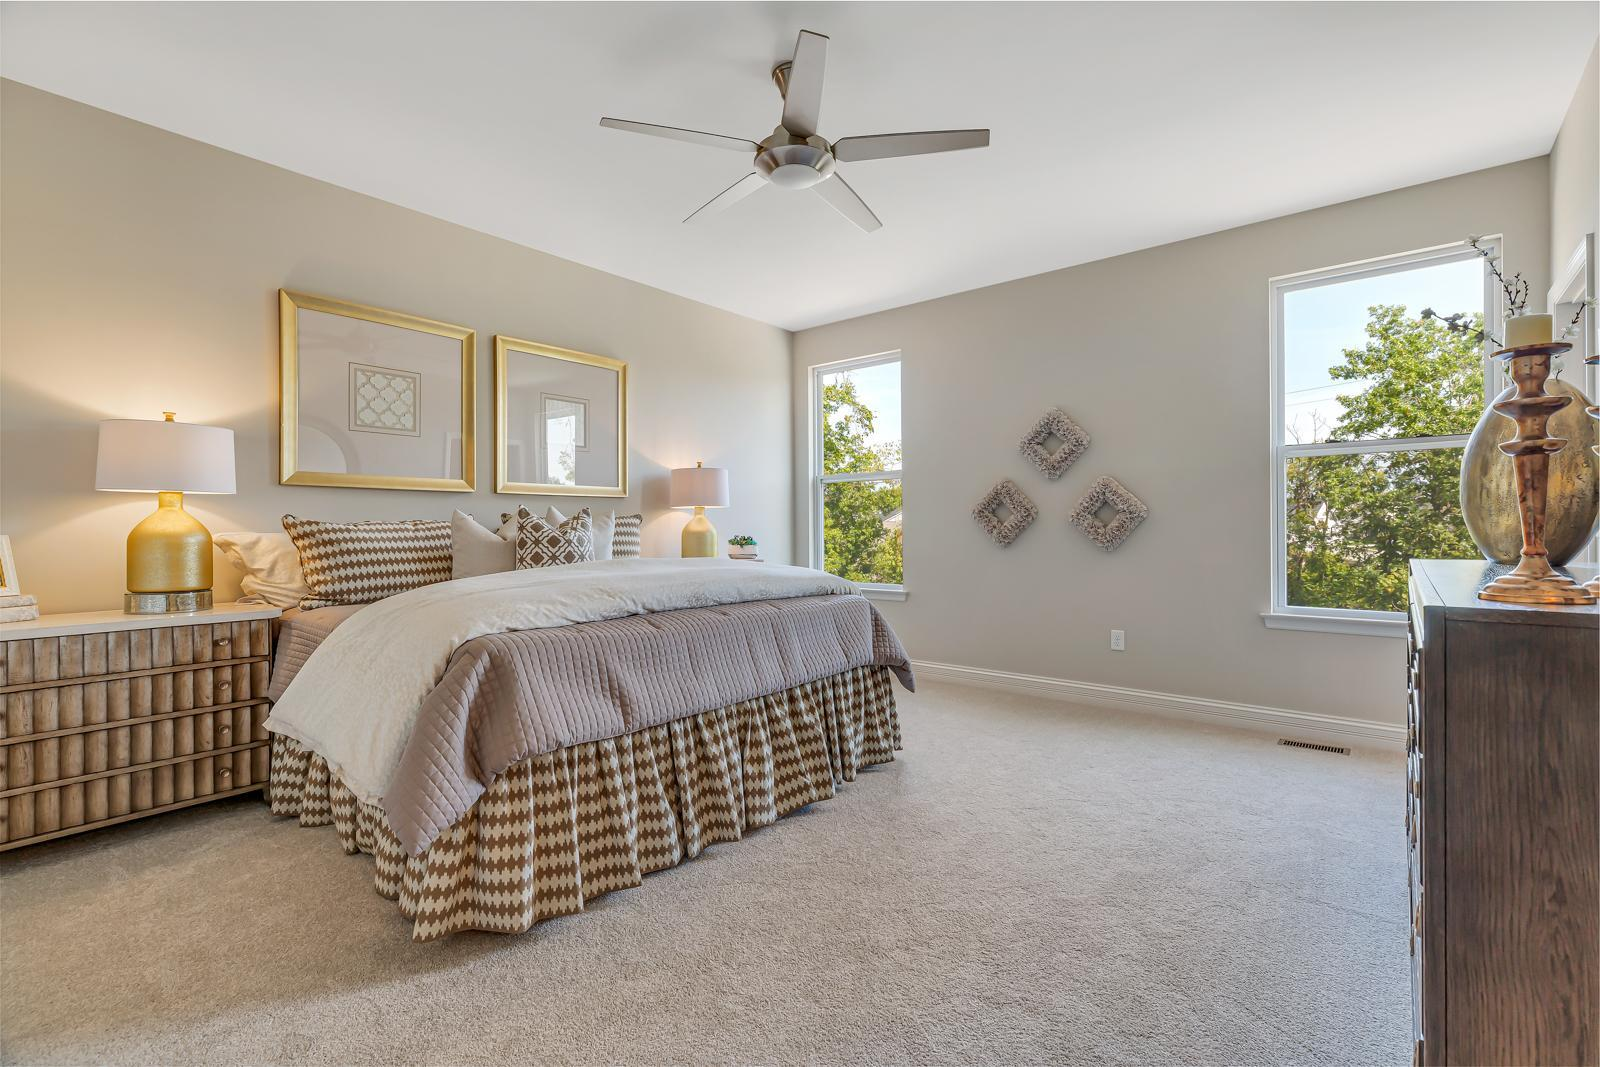 Bedroom featured in the Tuscany II By McKelvey Homes in St. Louis, MO